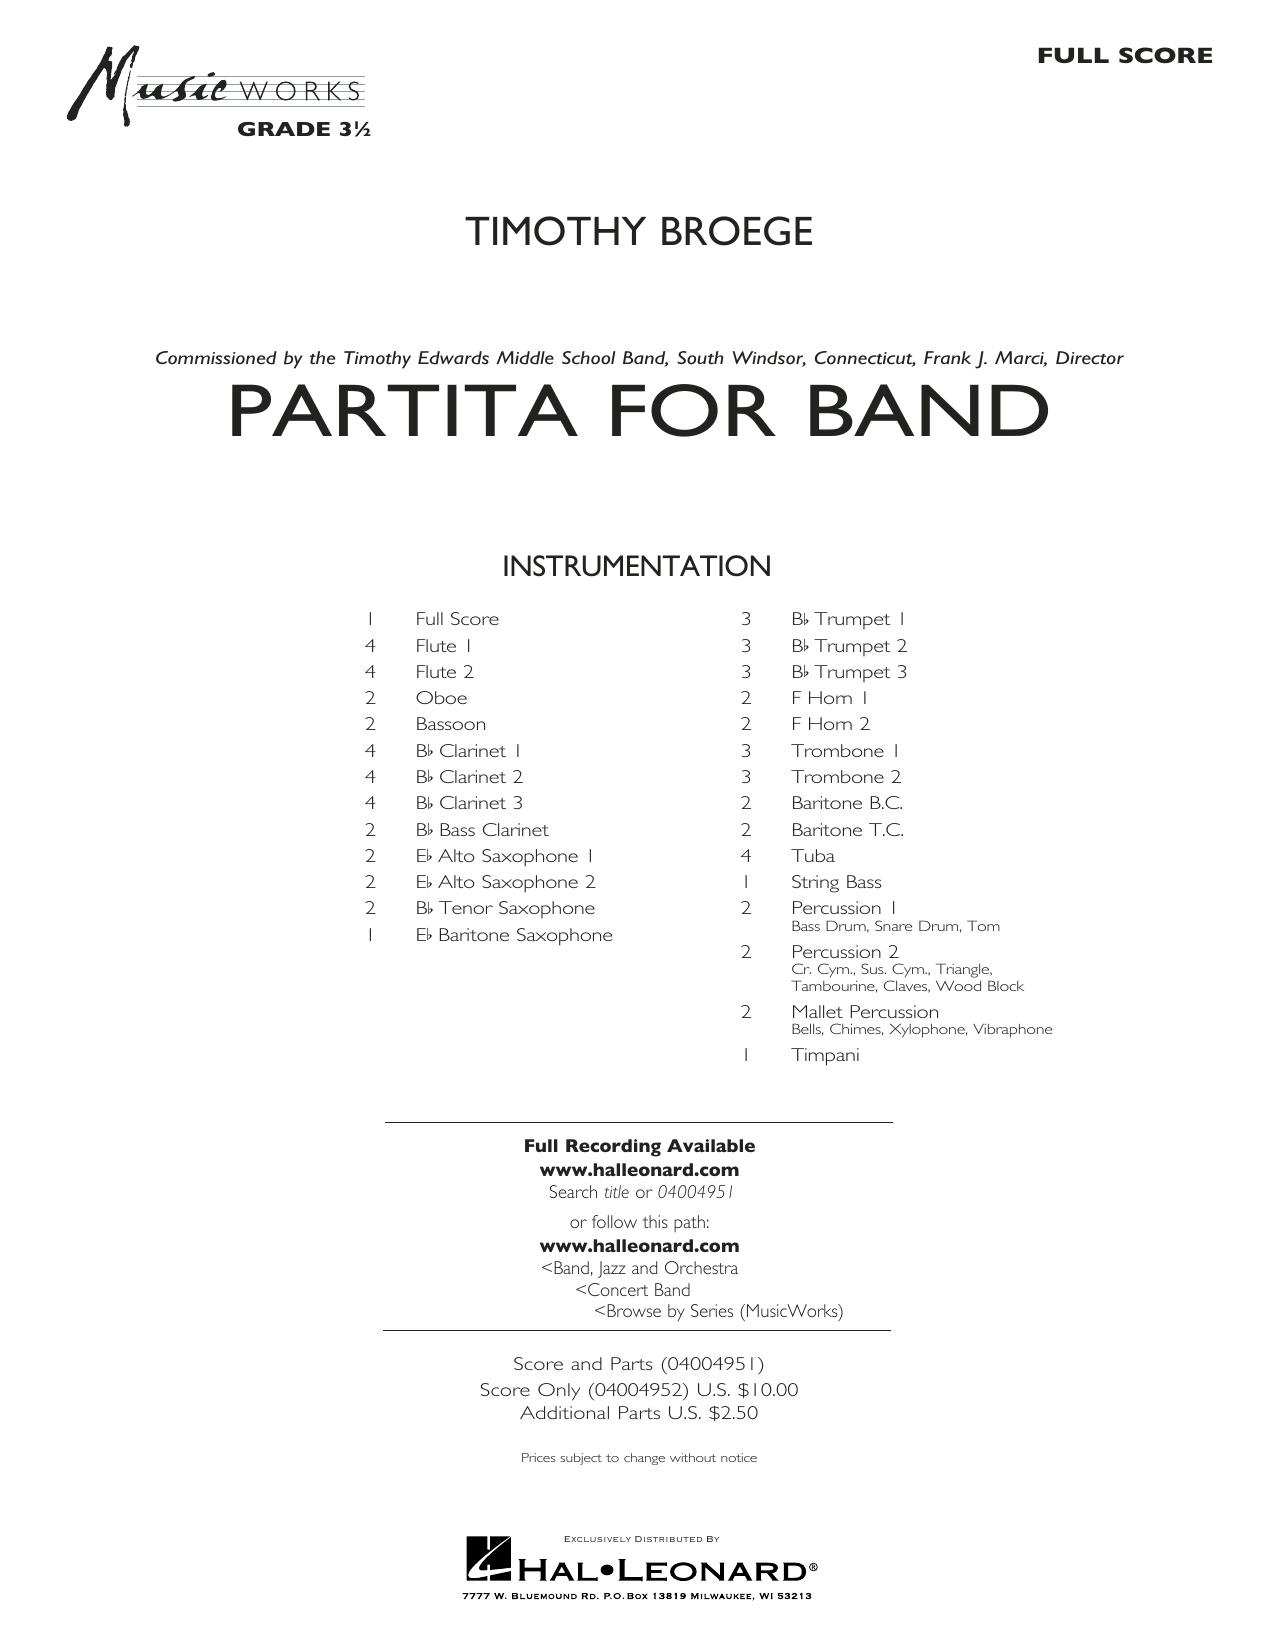 Timothy Broege Partita for Band - Conductor Score (Full Score) sheet music notes and chords. Download Printable PDF.